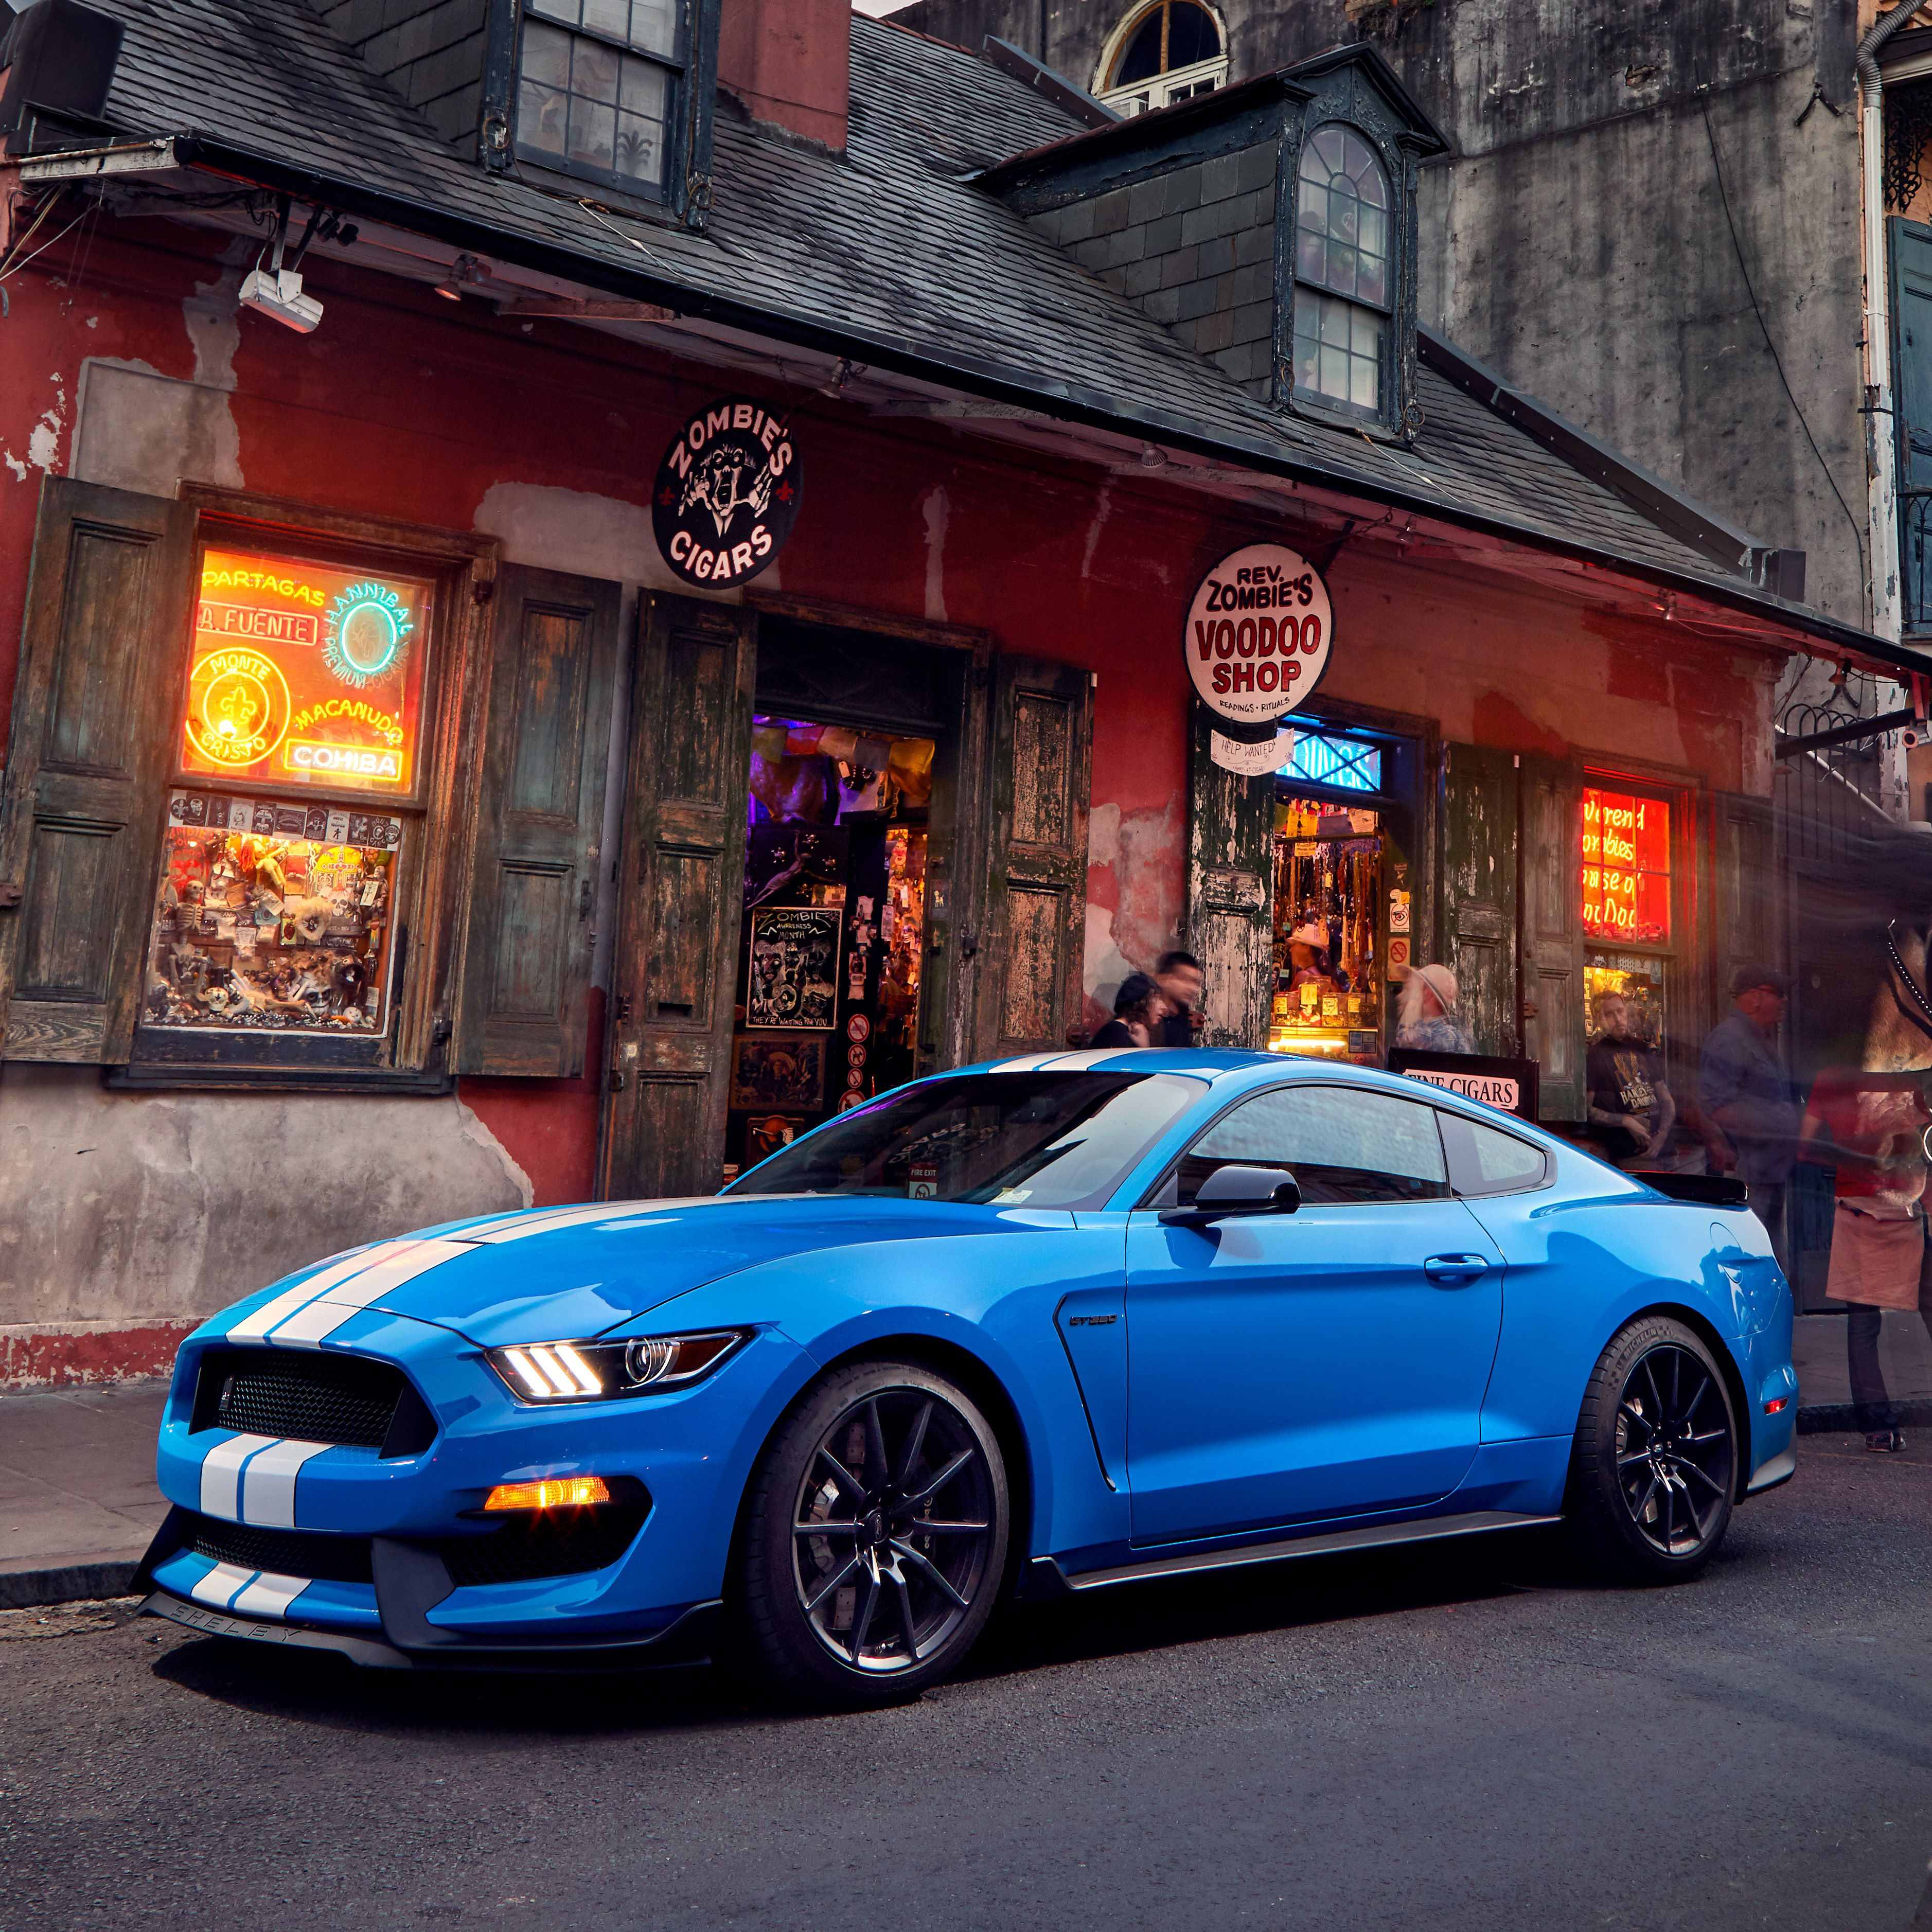 2017 ford mustang shelby gt350 \u2013 40,000 mile evaluation2017 ford mustang shelby gt350